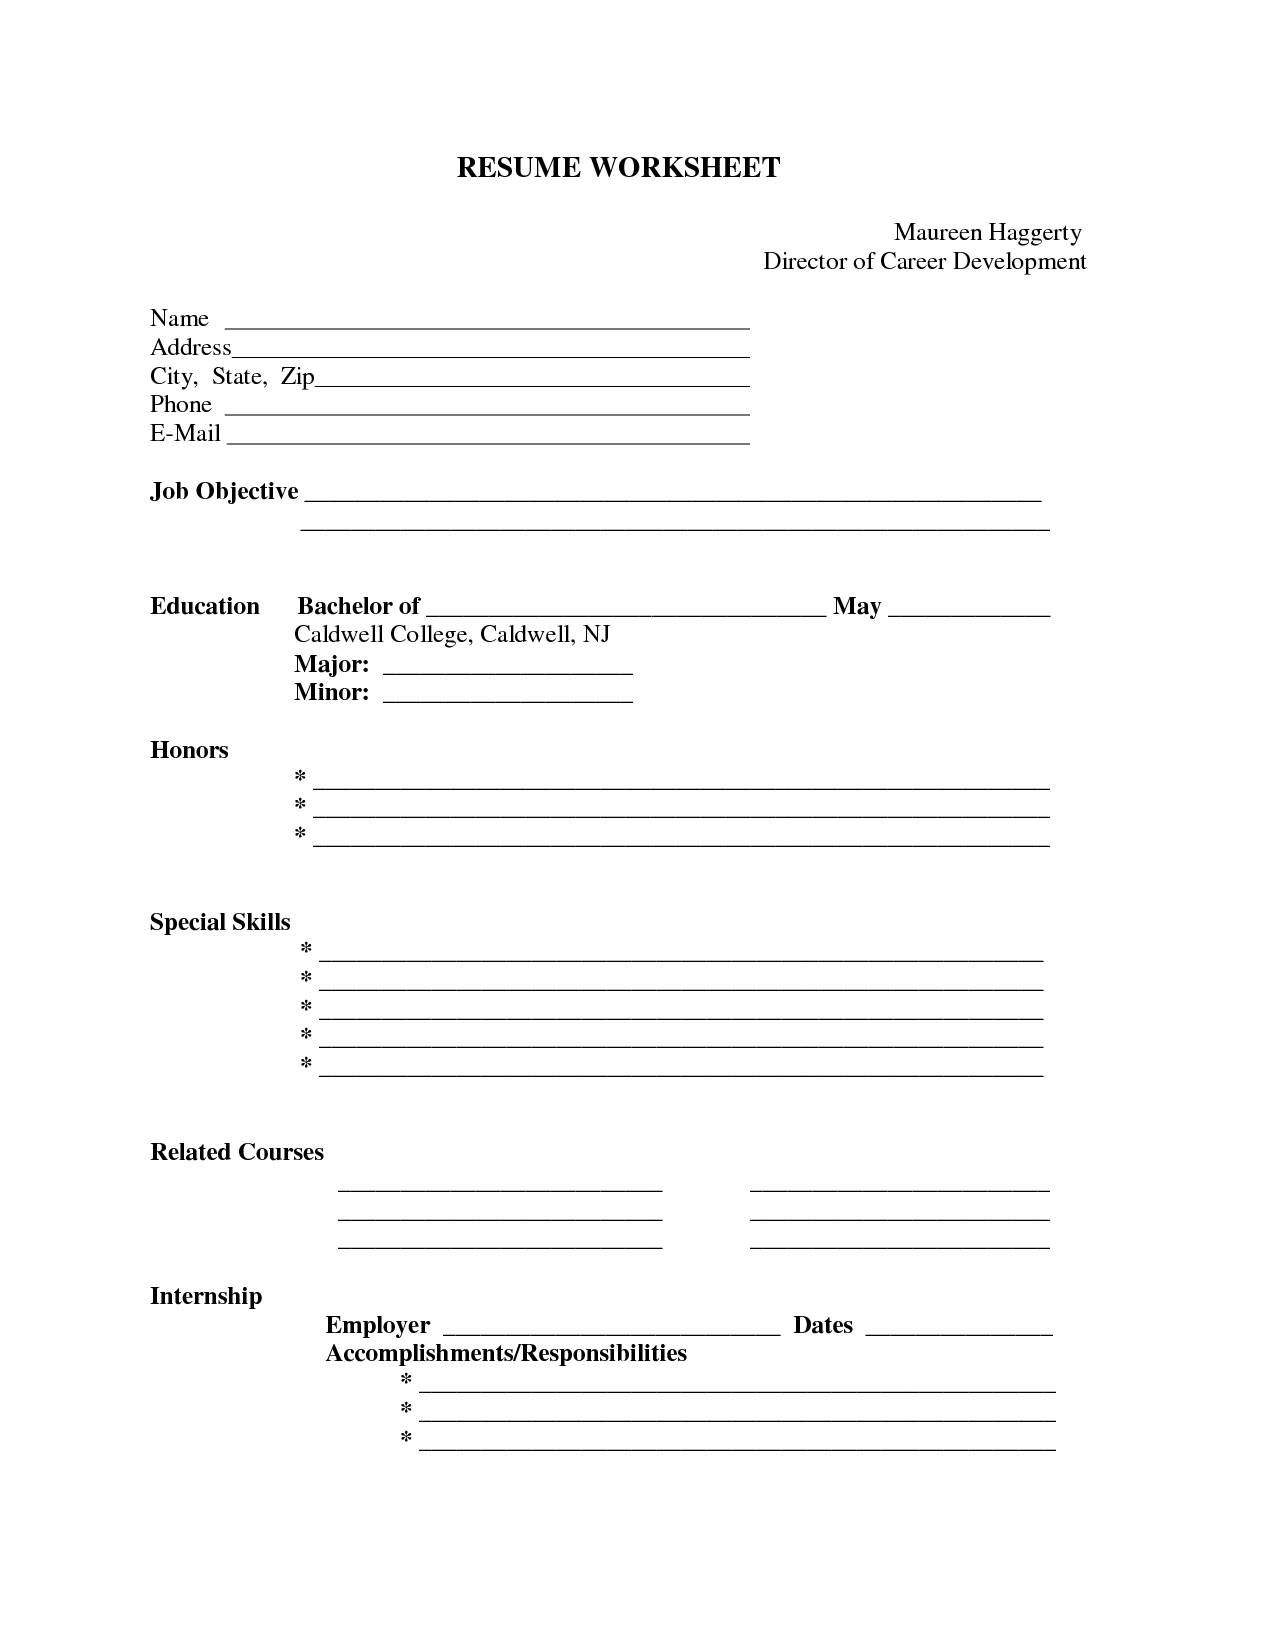 Nice Free Resume Builder For High School Students Templates And Print Online  Maker Template Student Blank Ideas Example  Free Resume Templates To Download And Print